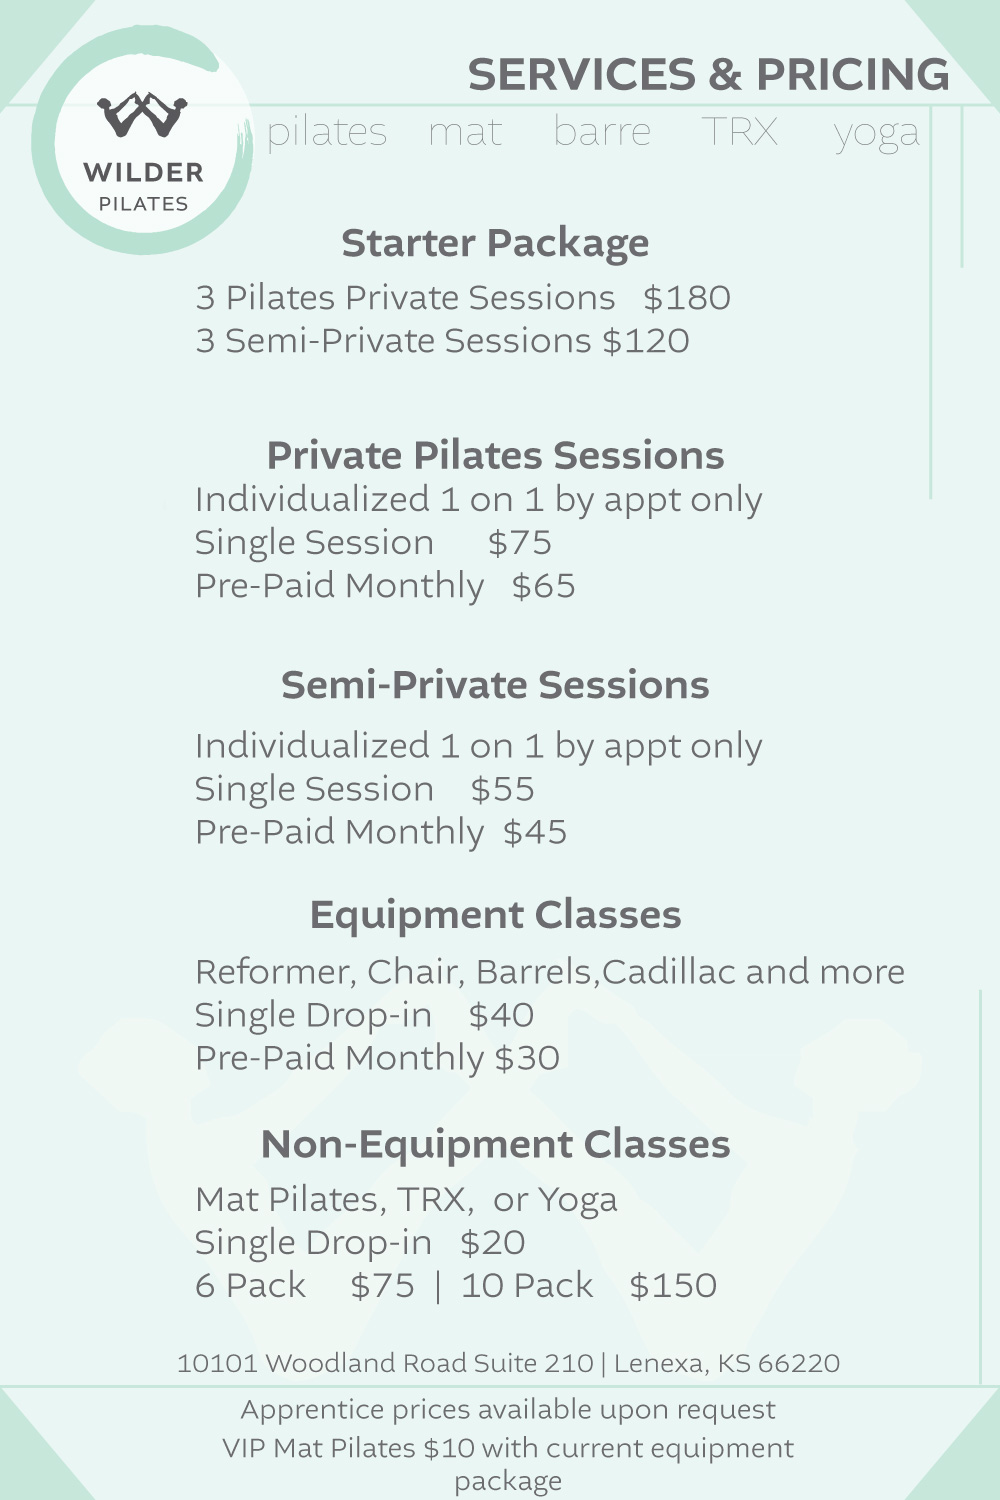 services and pricing for wilder pilates studio, lenexa kansas 2018